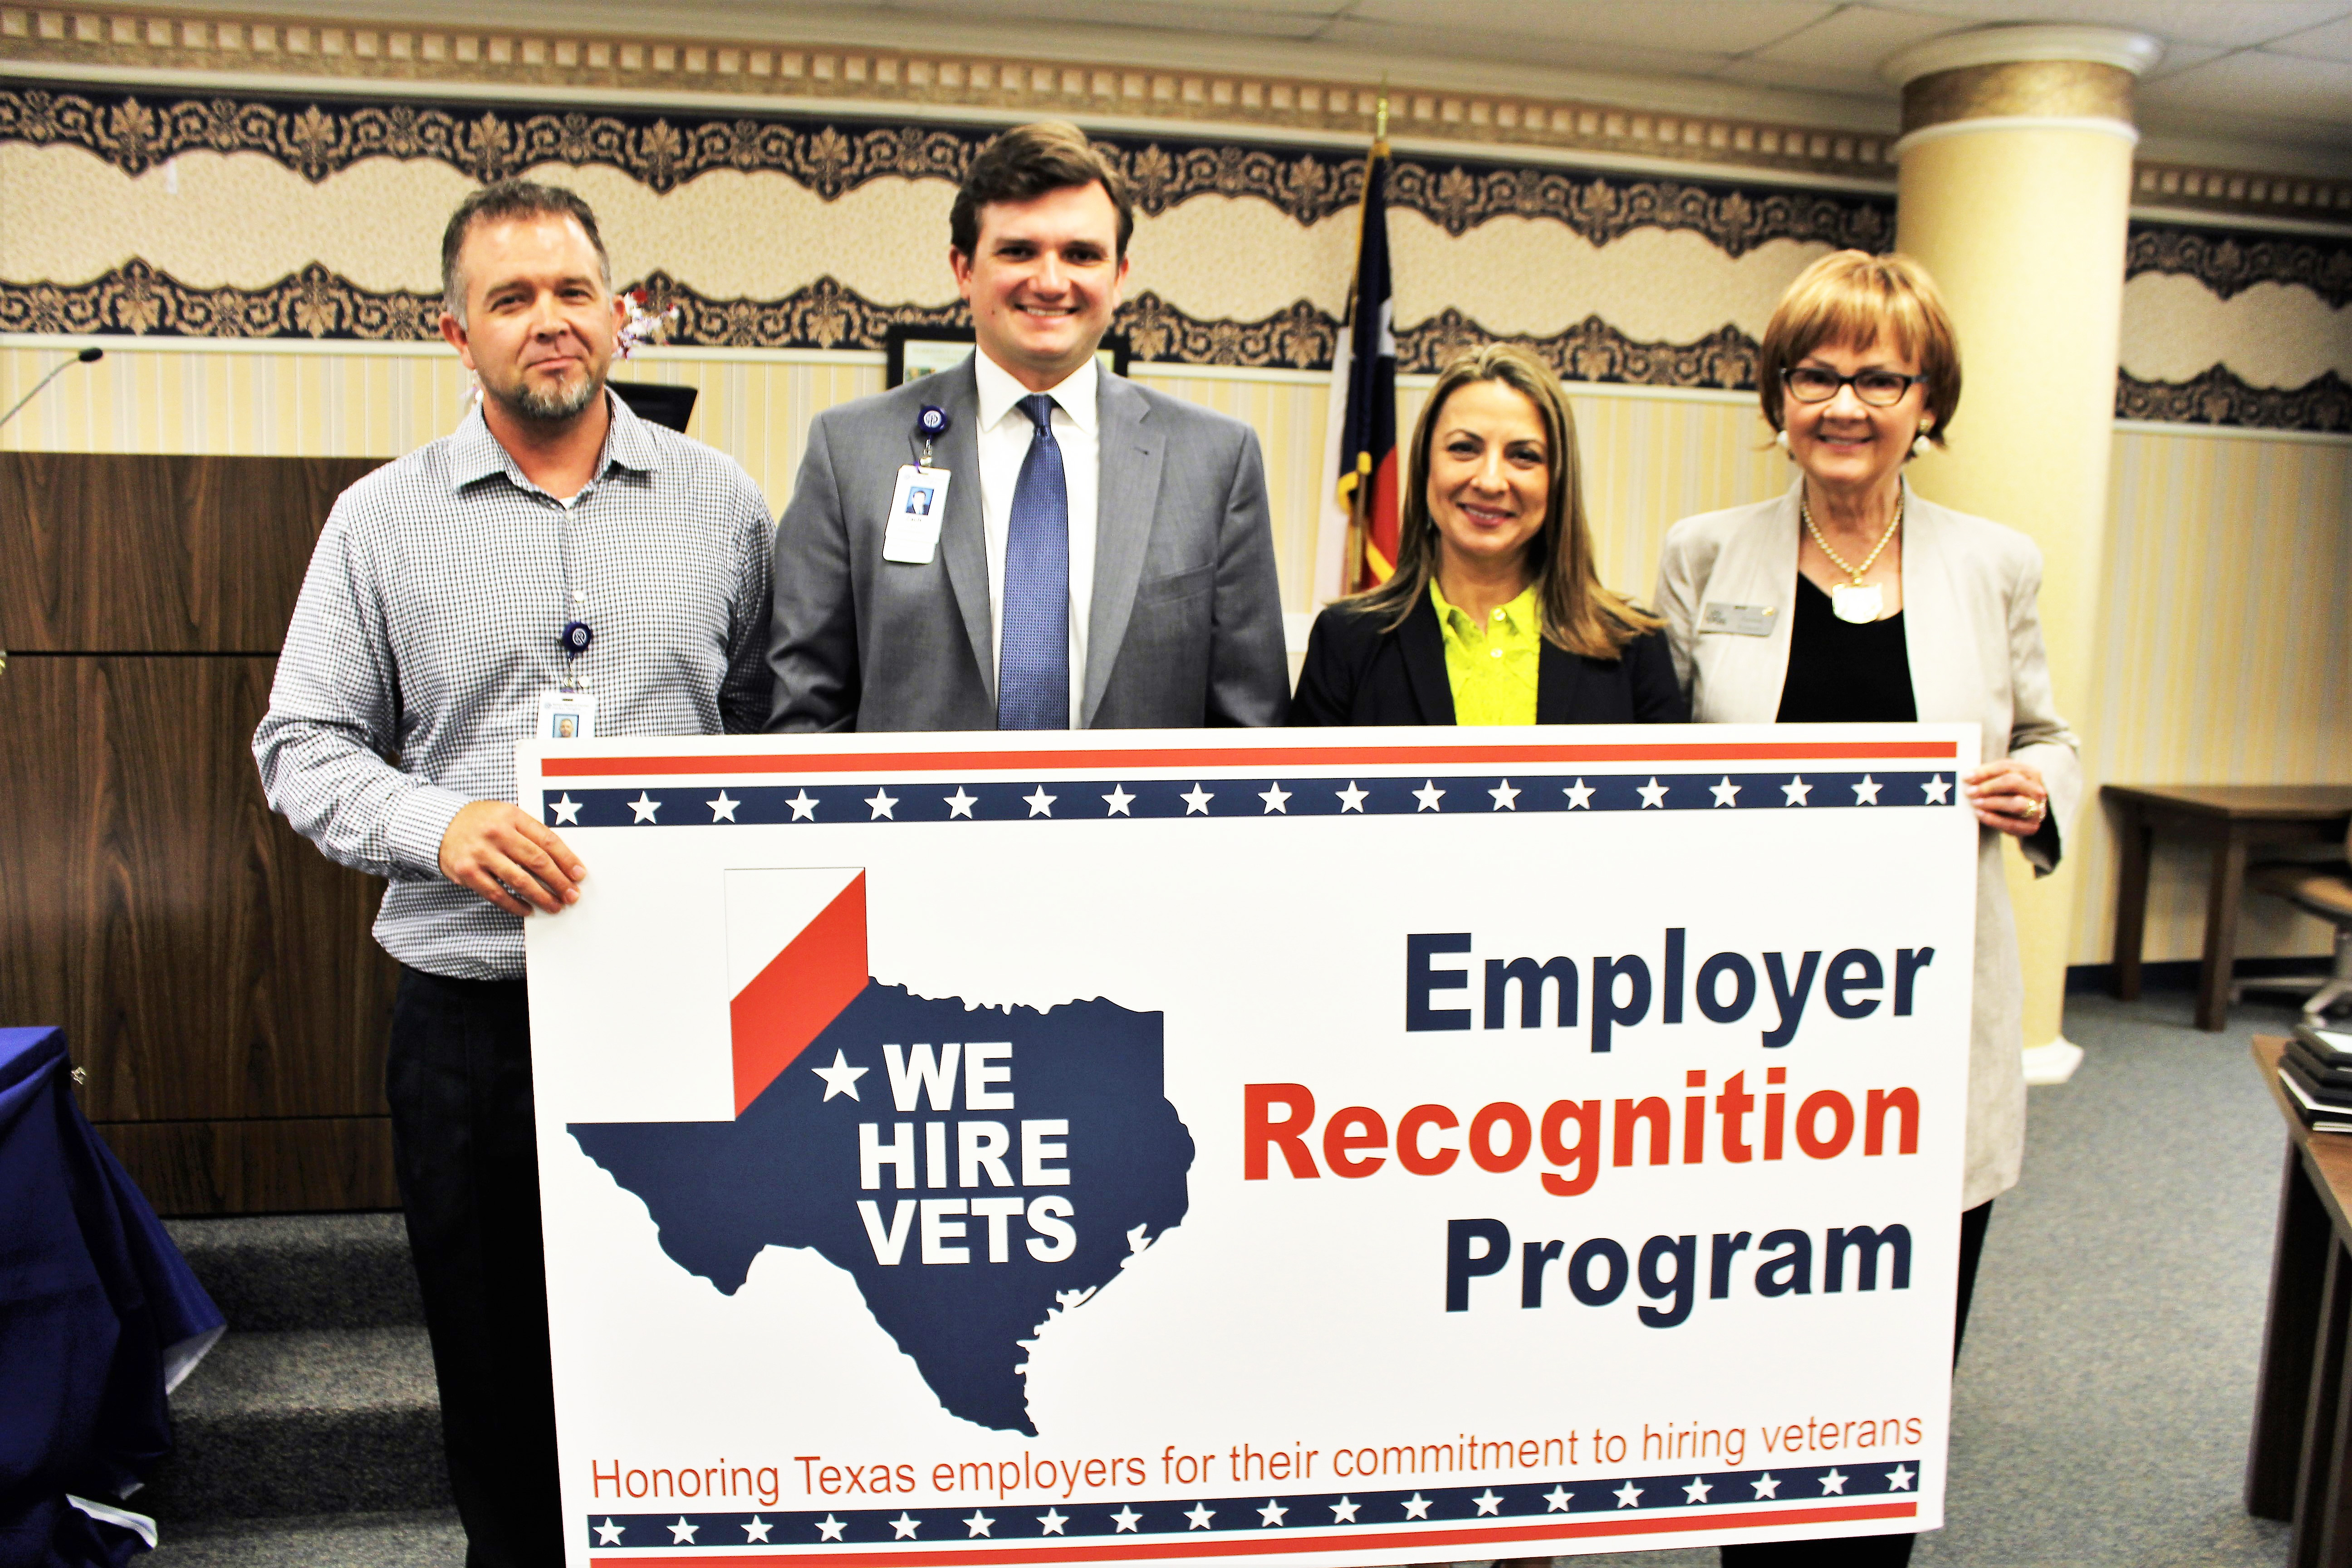 "PHOTO: (L) Michael Hales, RN at Seton Medical Center Harker Heights, Zachary K. Dietze, CEO of Seton Medical Center Harker Heights, TWC Commissioner Representing Employers Ruth R. Hughs, and Central Texas Workforce Development Board Executive Director Susan Kamas, at the Killeen ""We Hire Vets"" event."